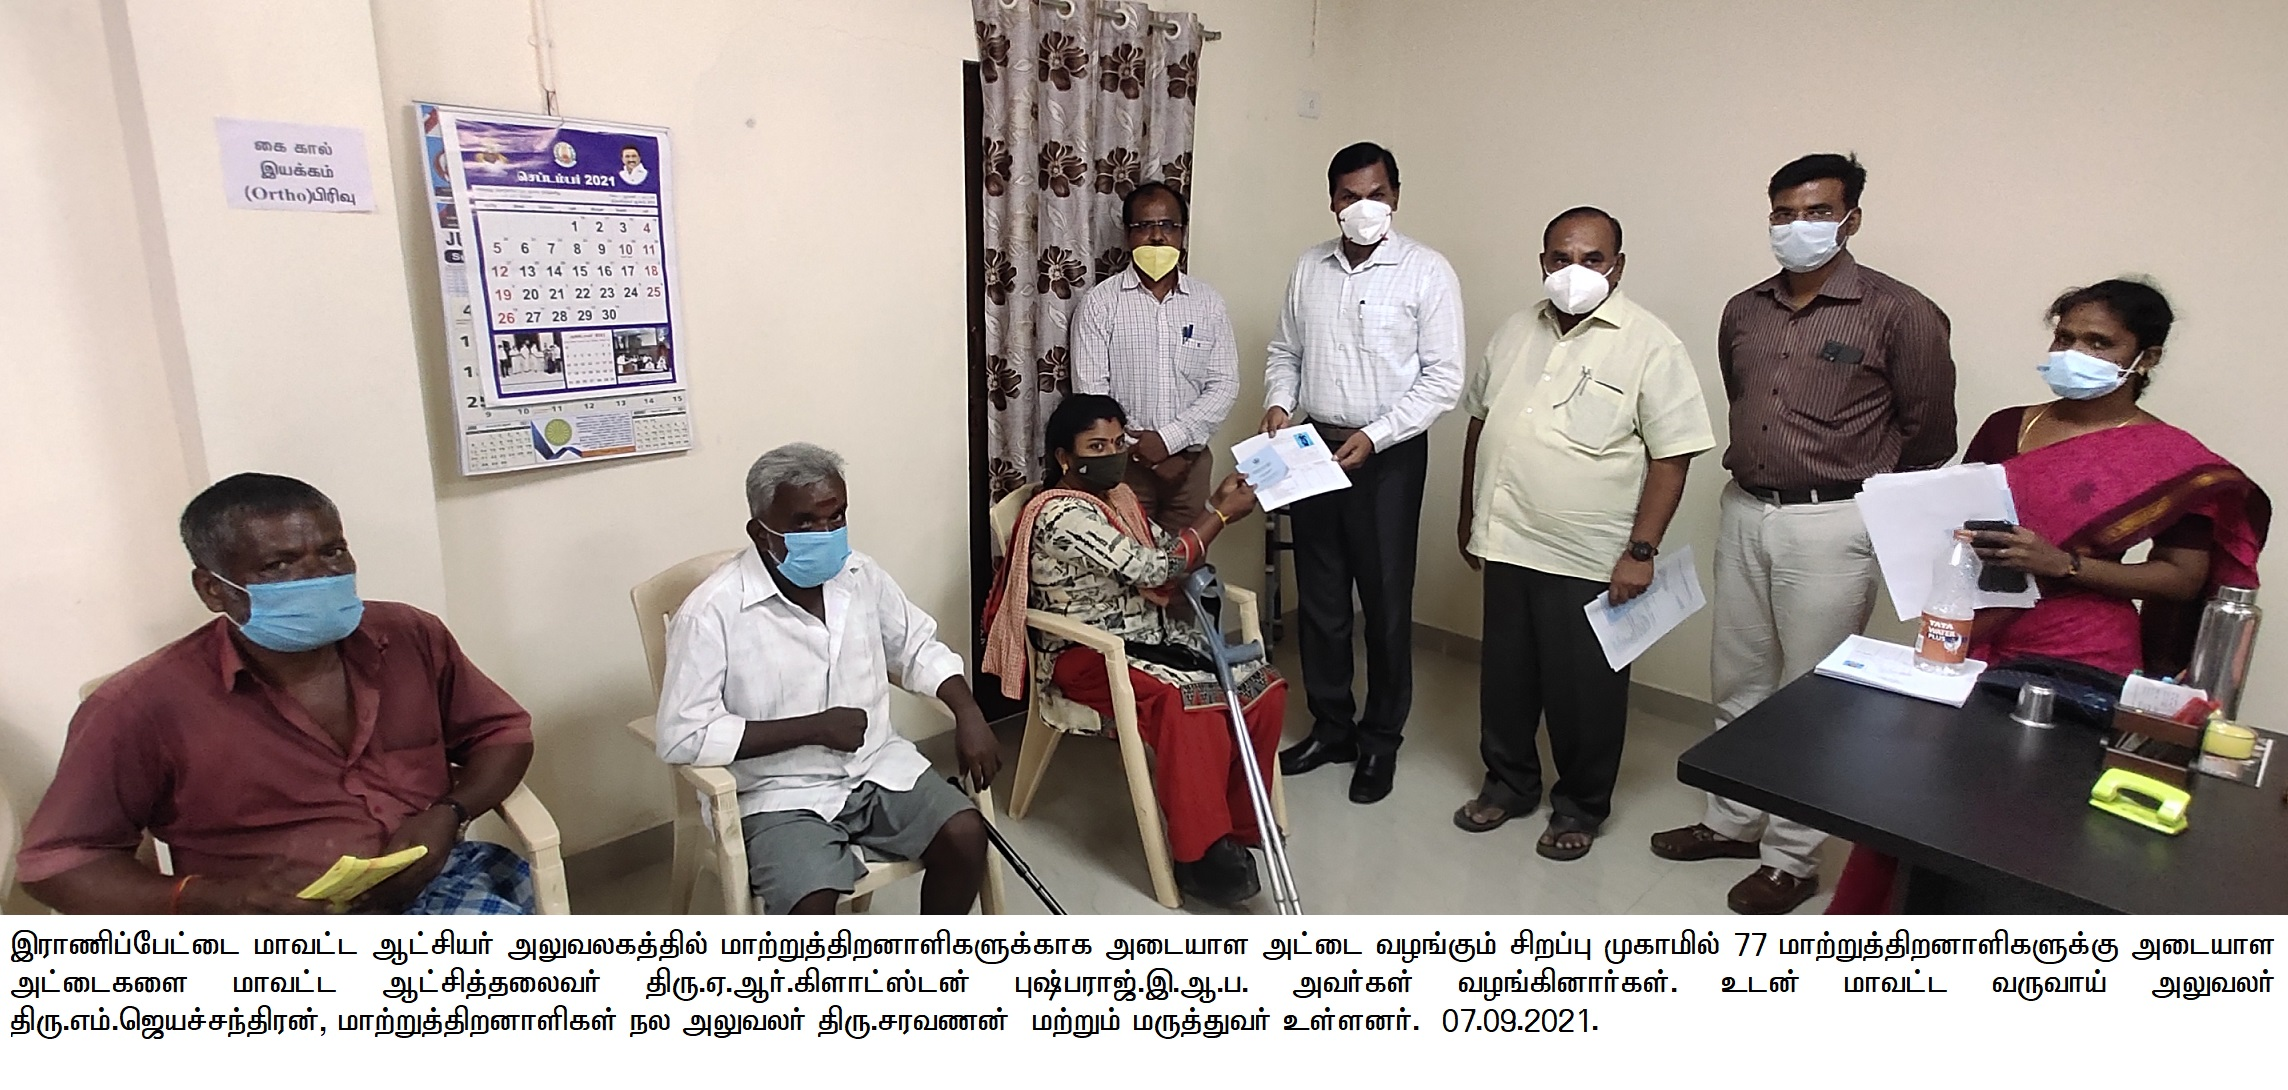 District Collector issued Physically Challenged Person's card 07/09/2021